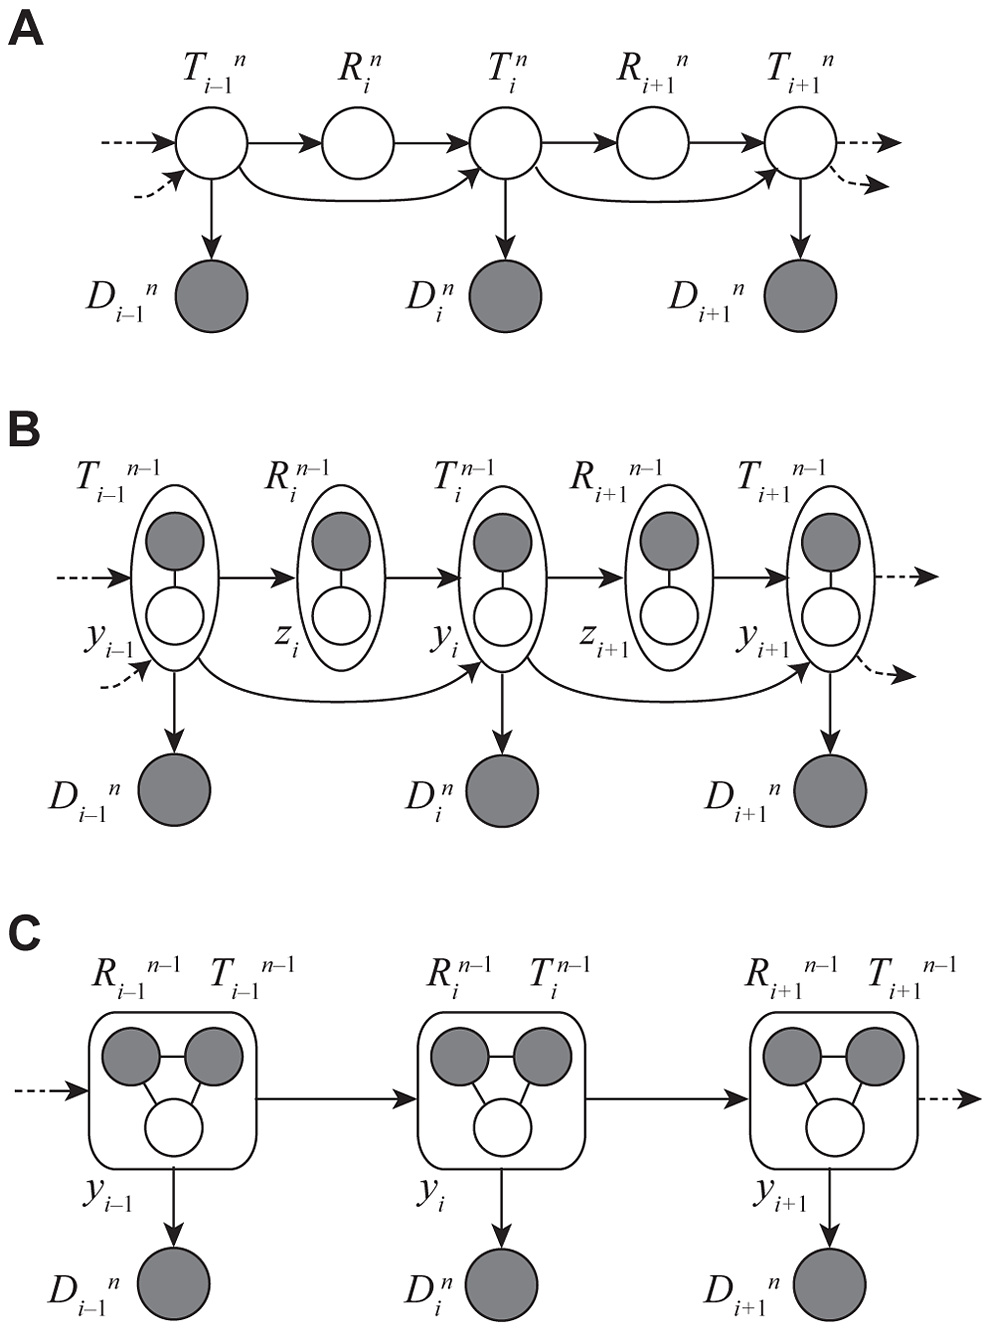 Graphical models for Discretized Sequentially Markov Coalescent (DSMC) models.